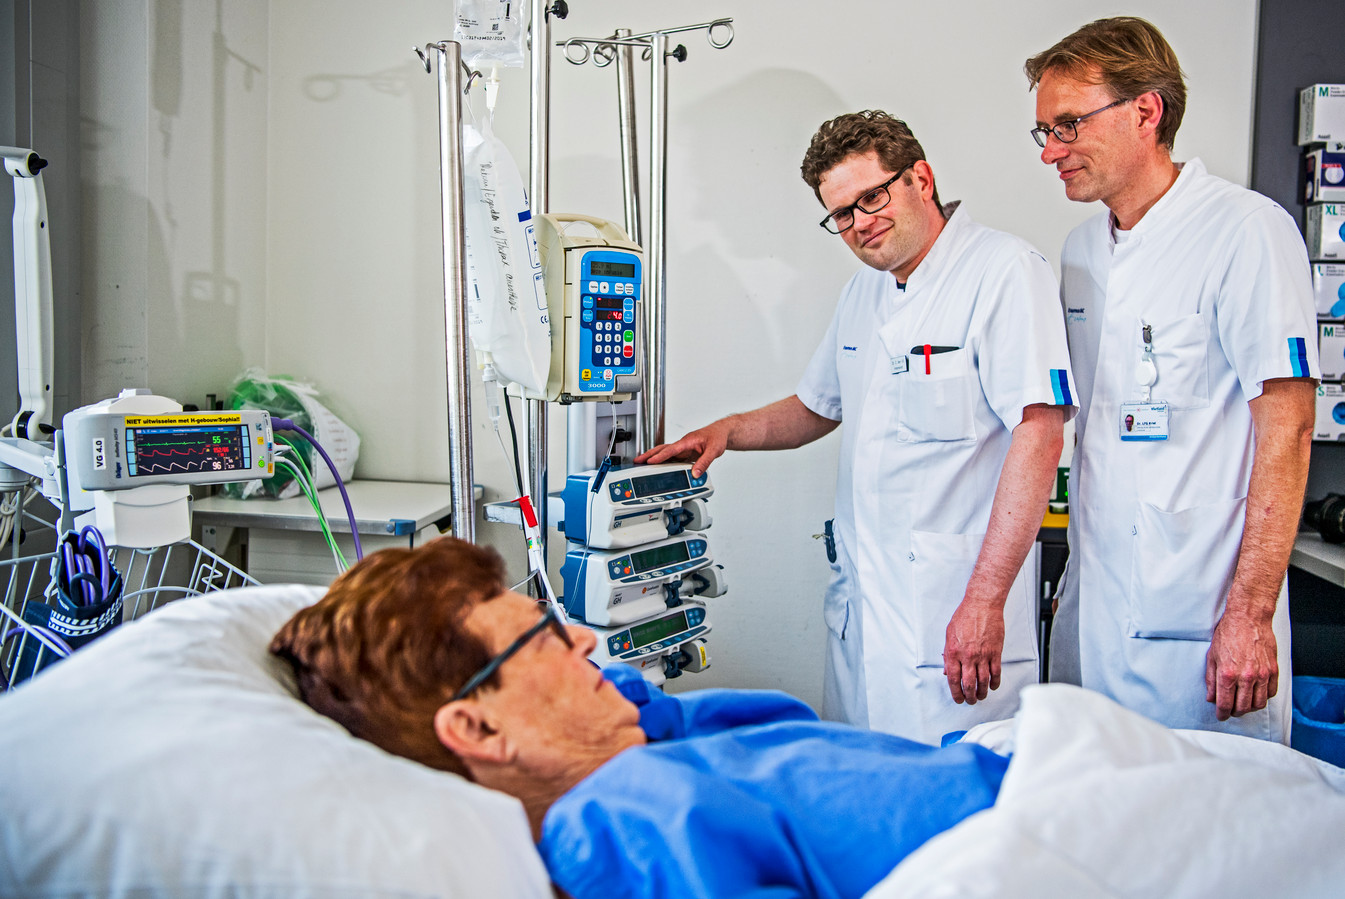 Archieffoto op de intensive care